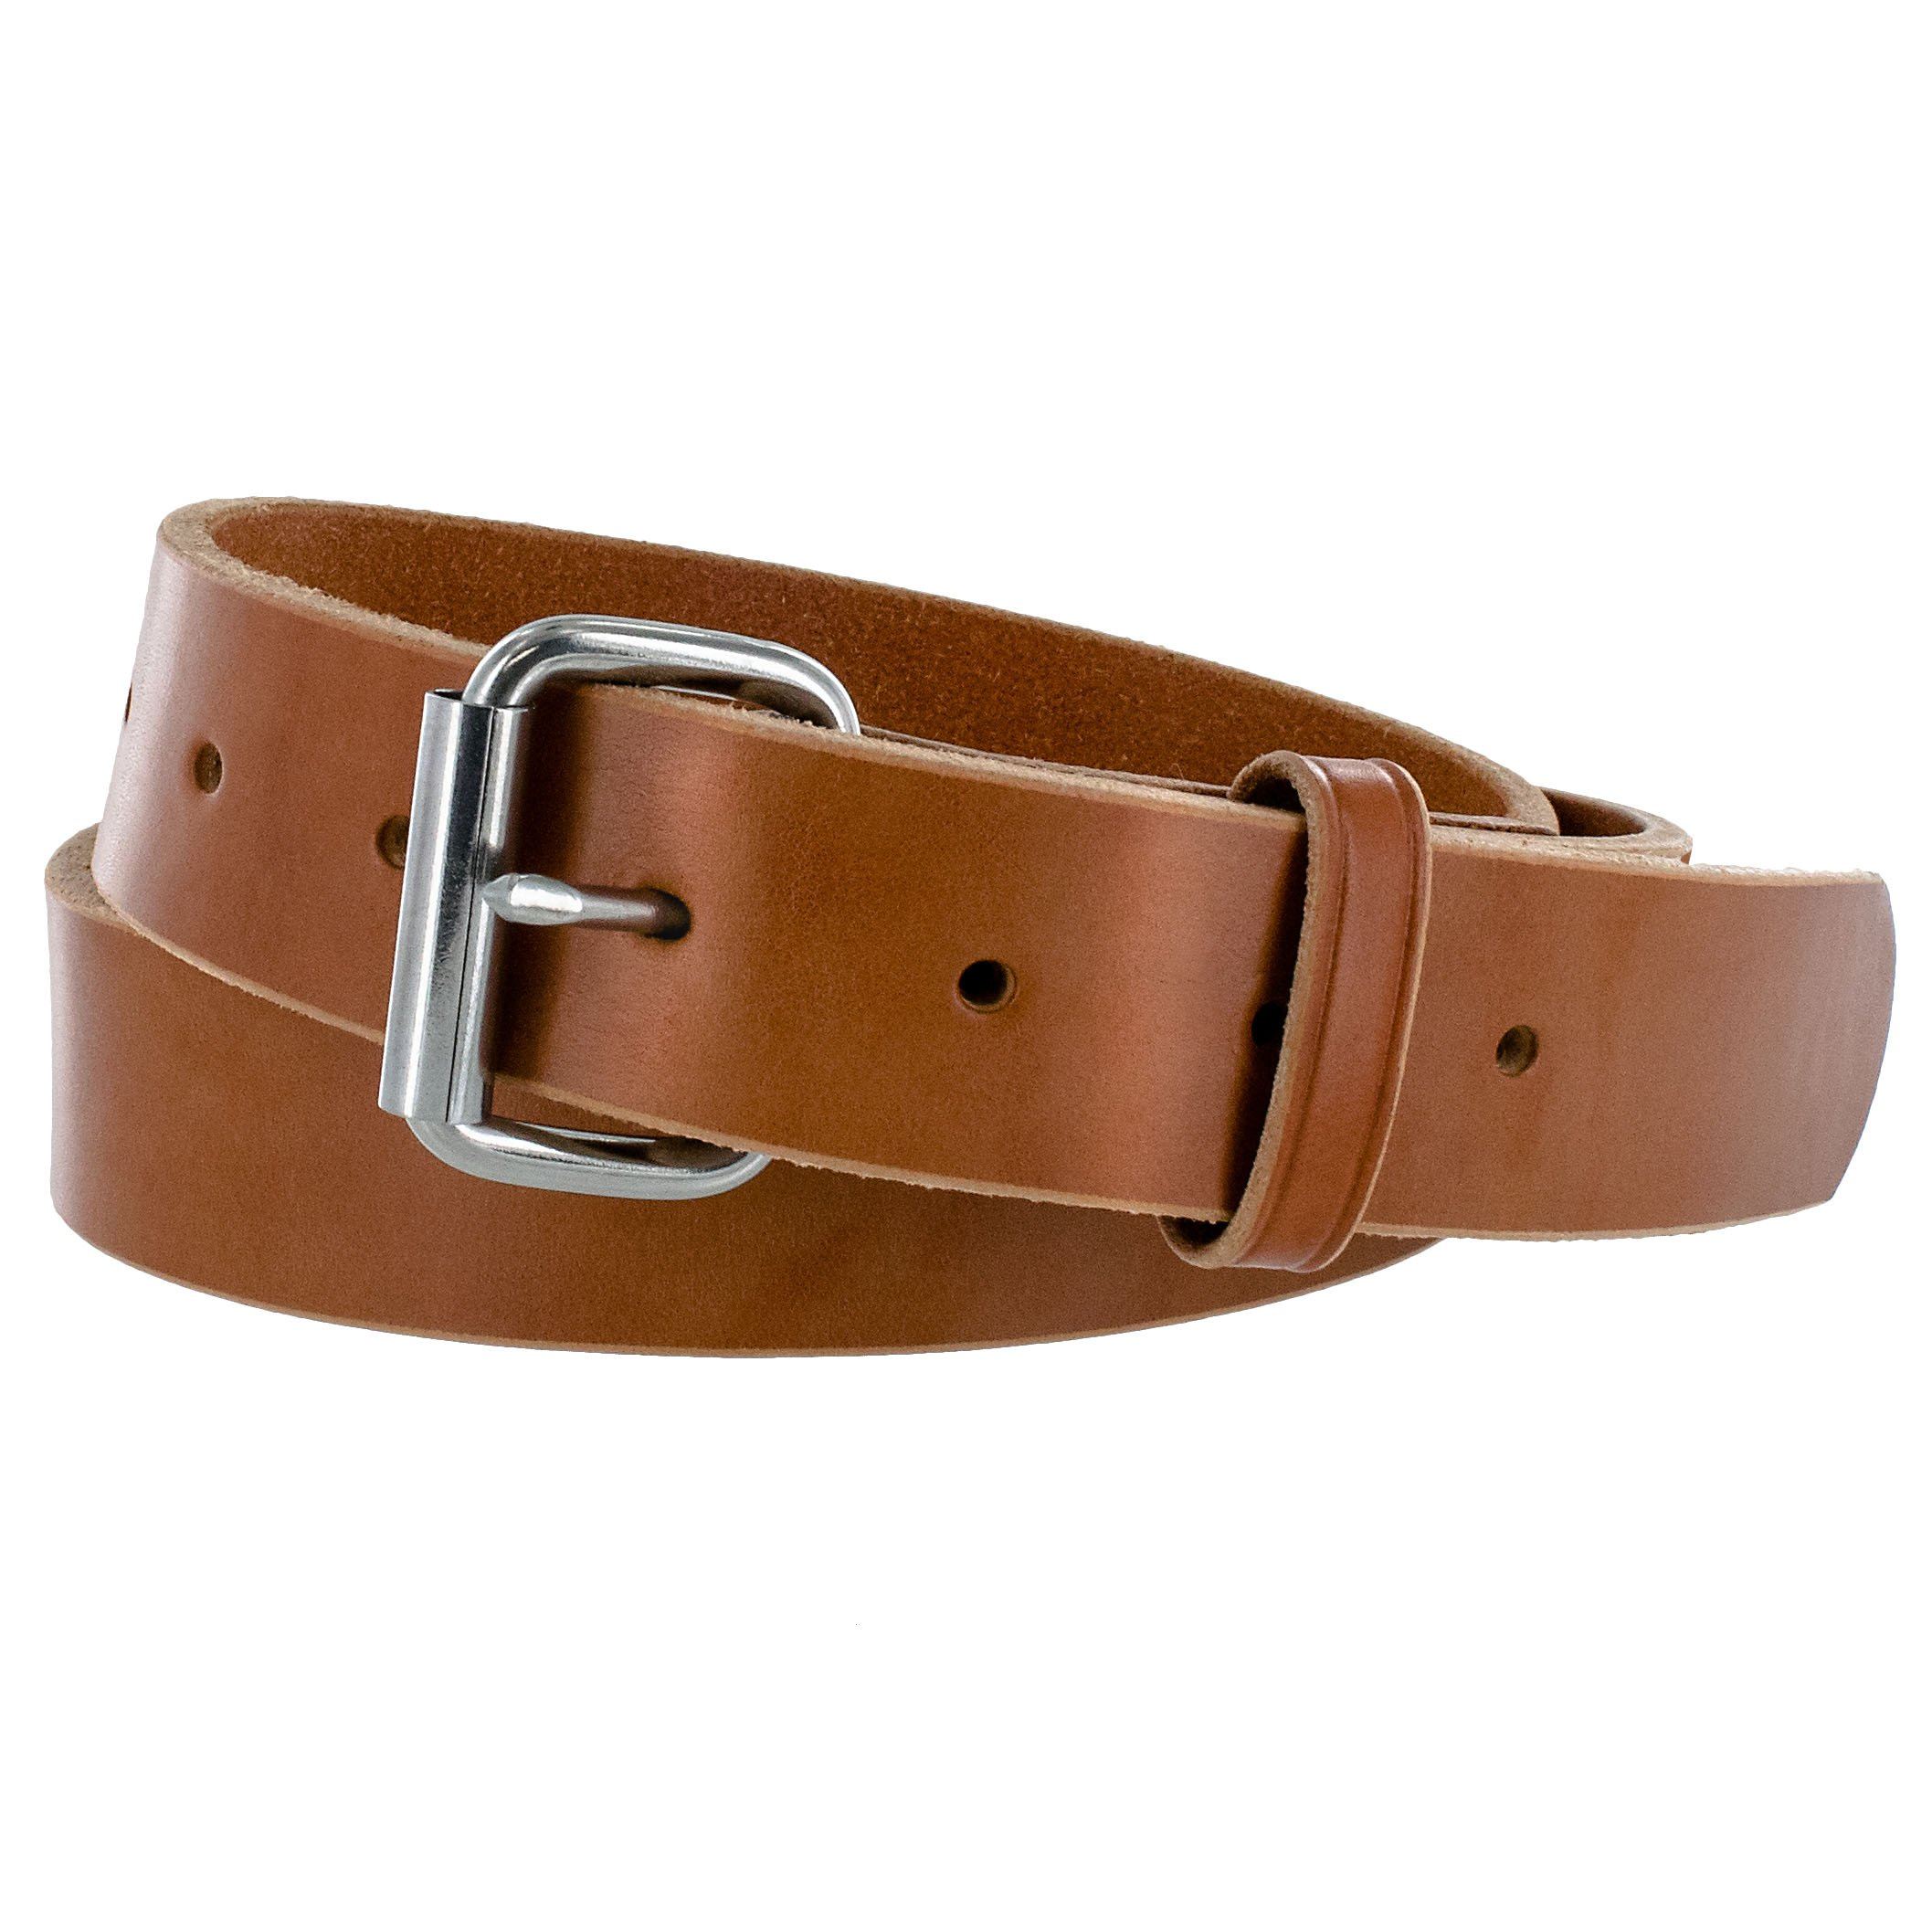 Hanks Gunner - USA Made Concealed Carry CCW Leather Gun Belt - 100 Year Warranty - 14 Ounce - Natural - 46 by Hanks Belts